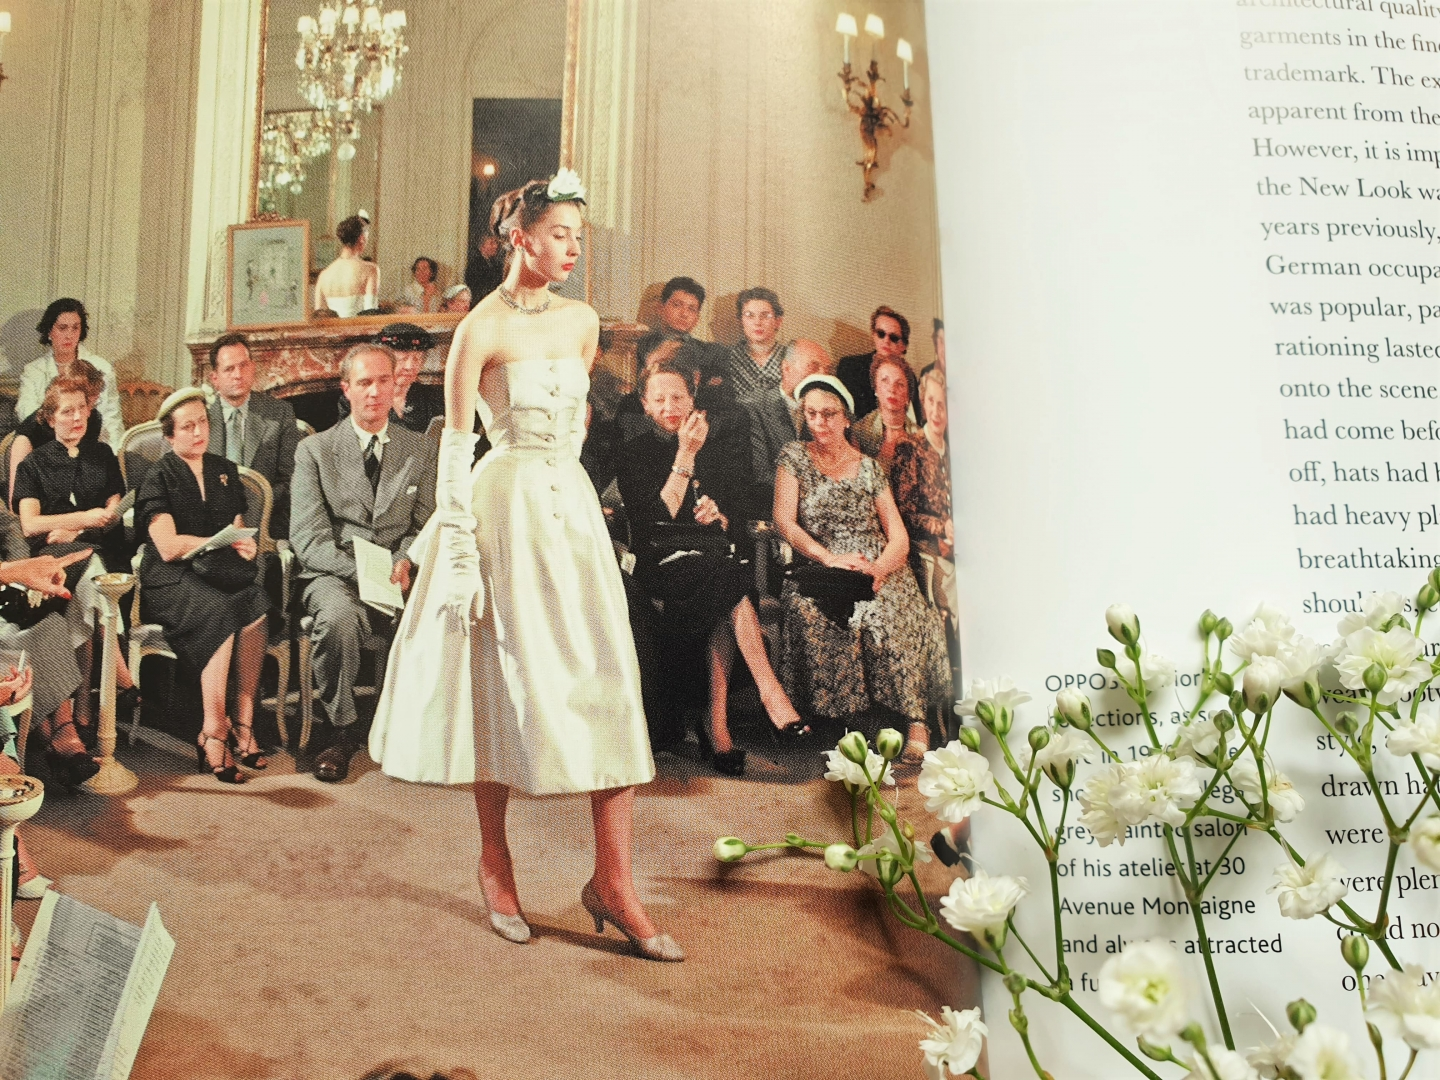 Christian Dior's New Look, excerpt from The Little Book of Dior by Karen Homer